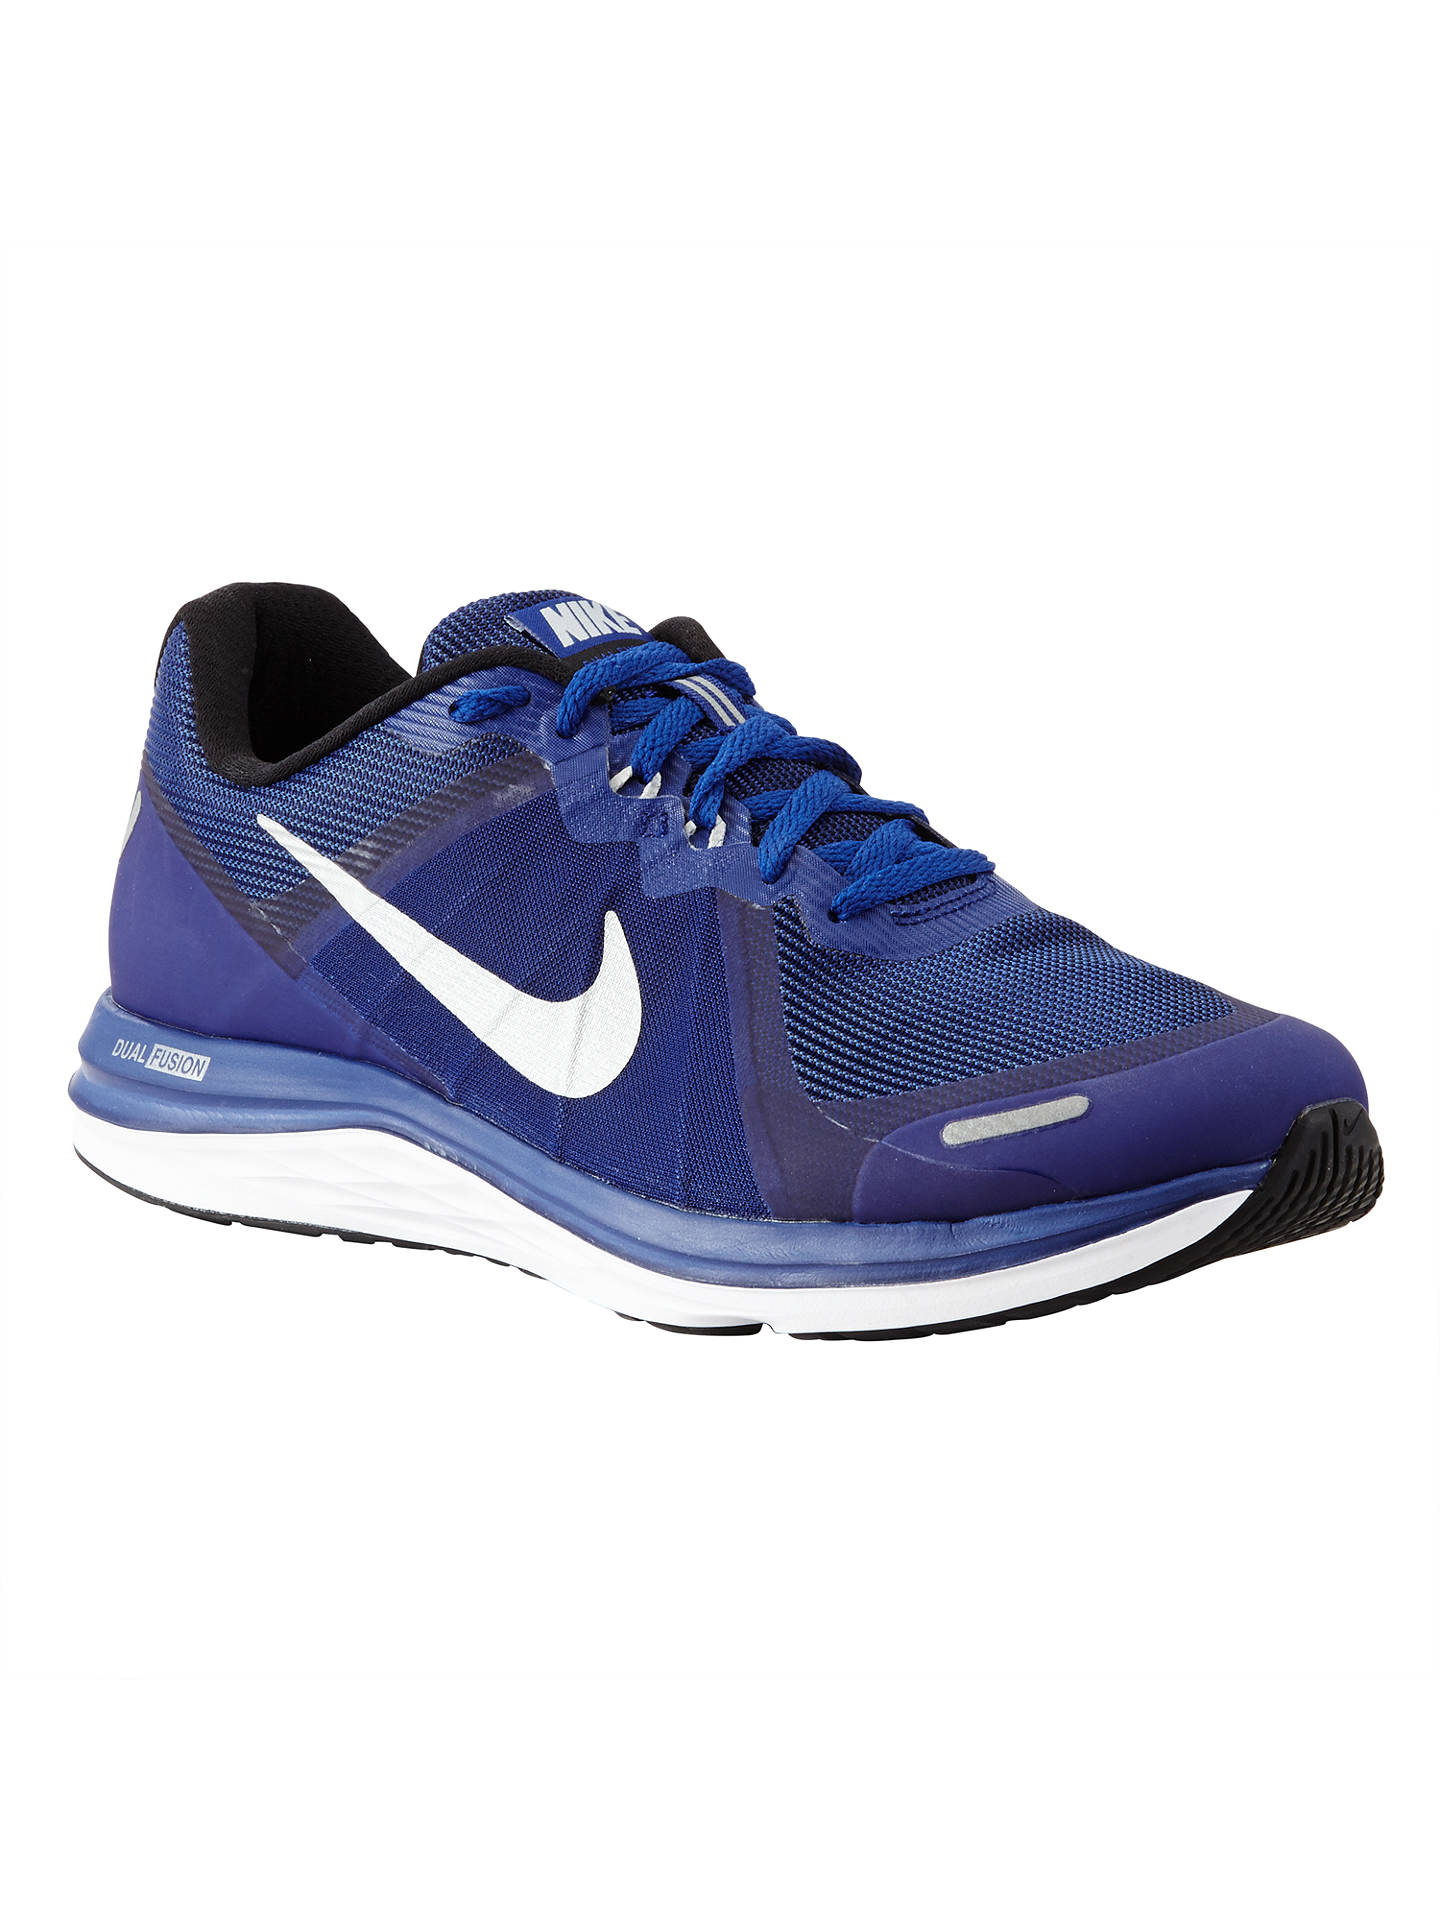 6e16aaa5dbfd Buy Nike Men s Dual Fusion X2 Running Shoes